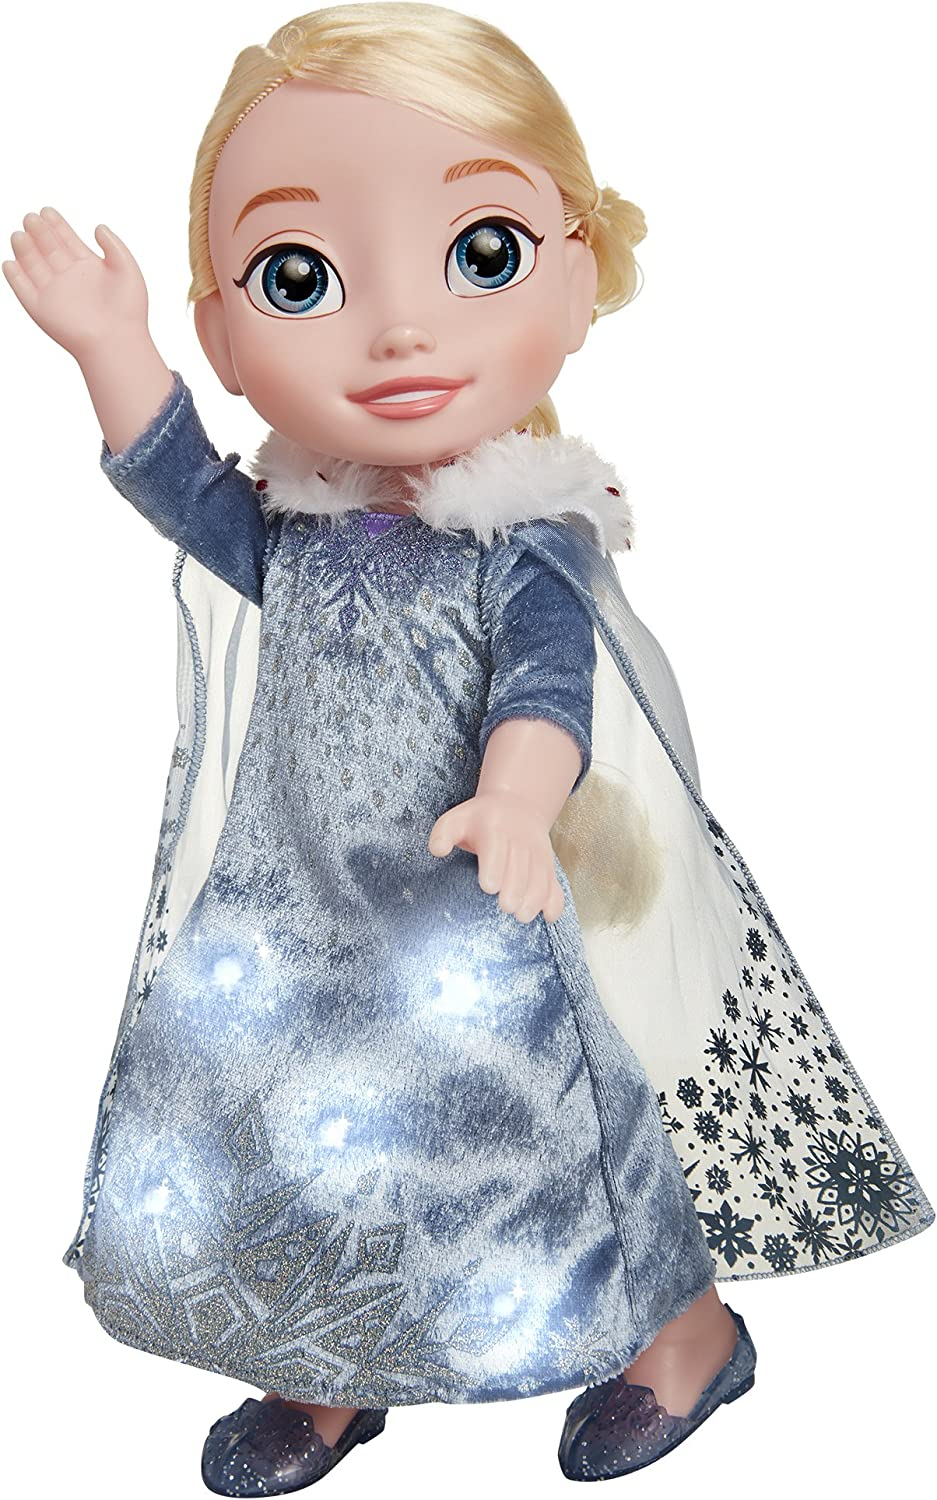 Disney Popular products Frozen Singing Popular brand in the world Elsa Doll Traditions